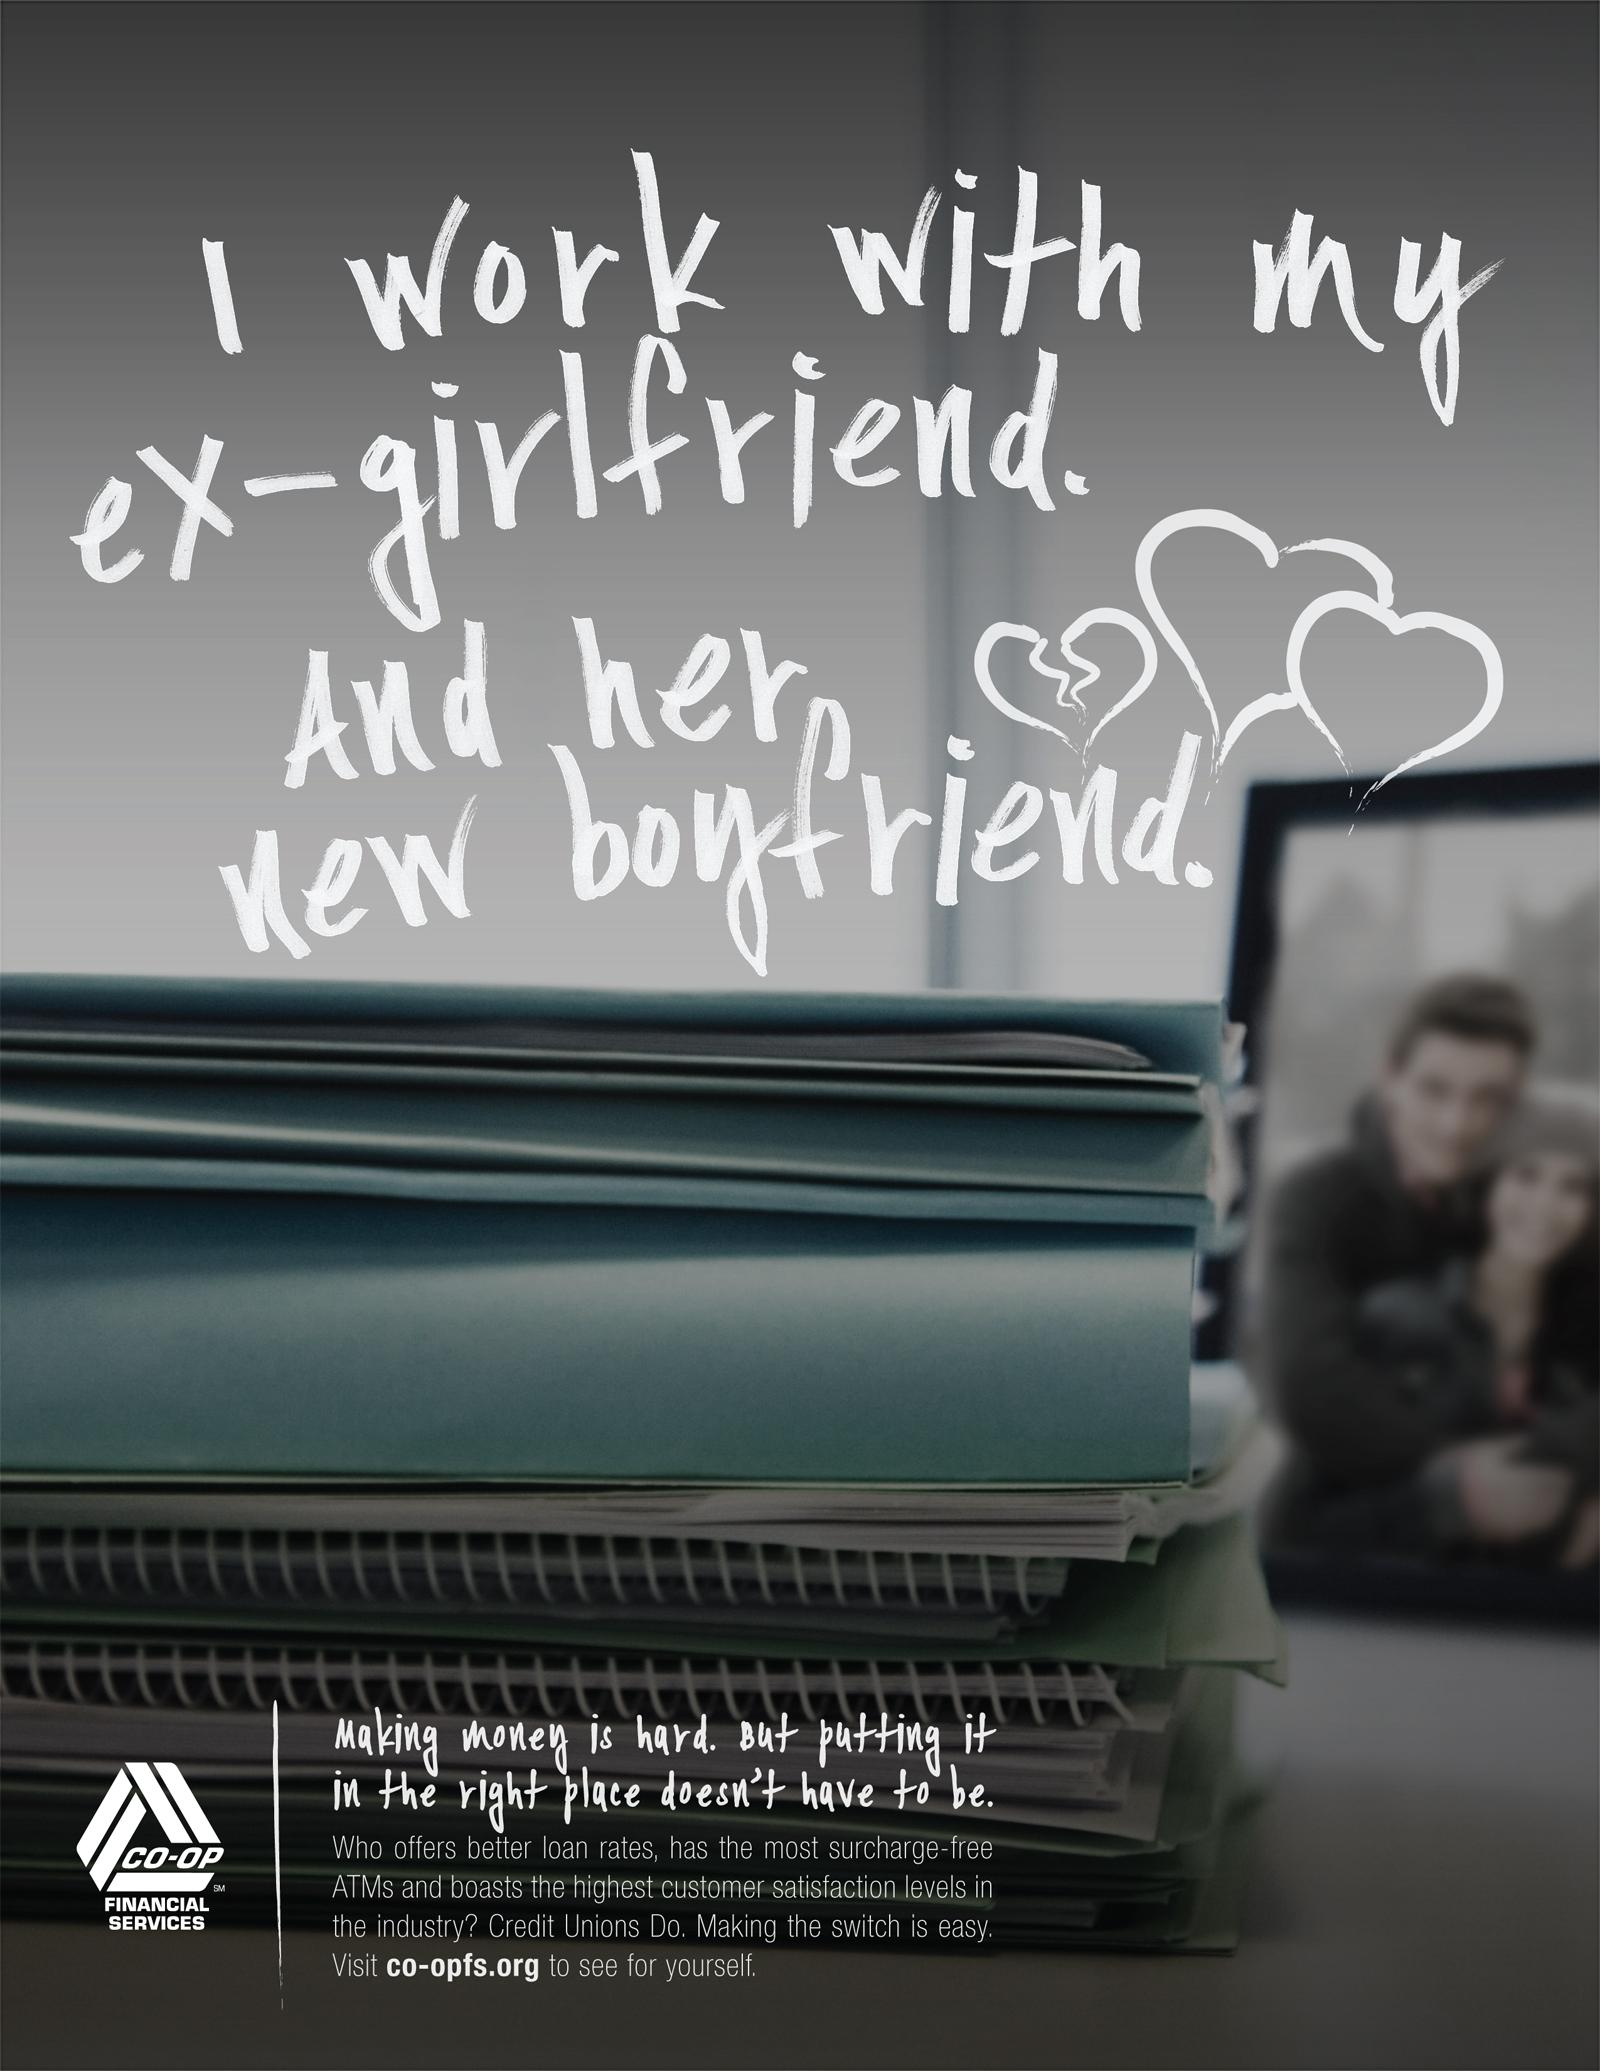 CO-OP Financial Services Print Ad -  Ex